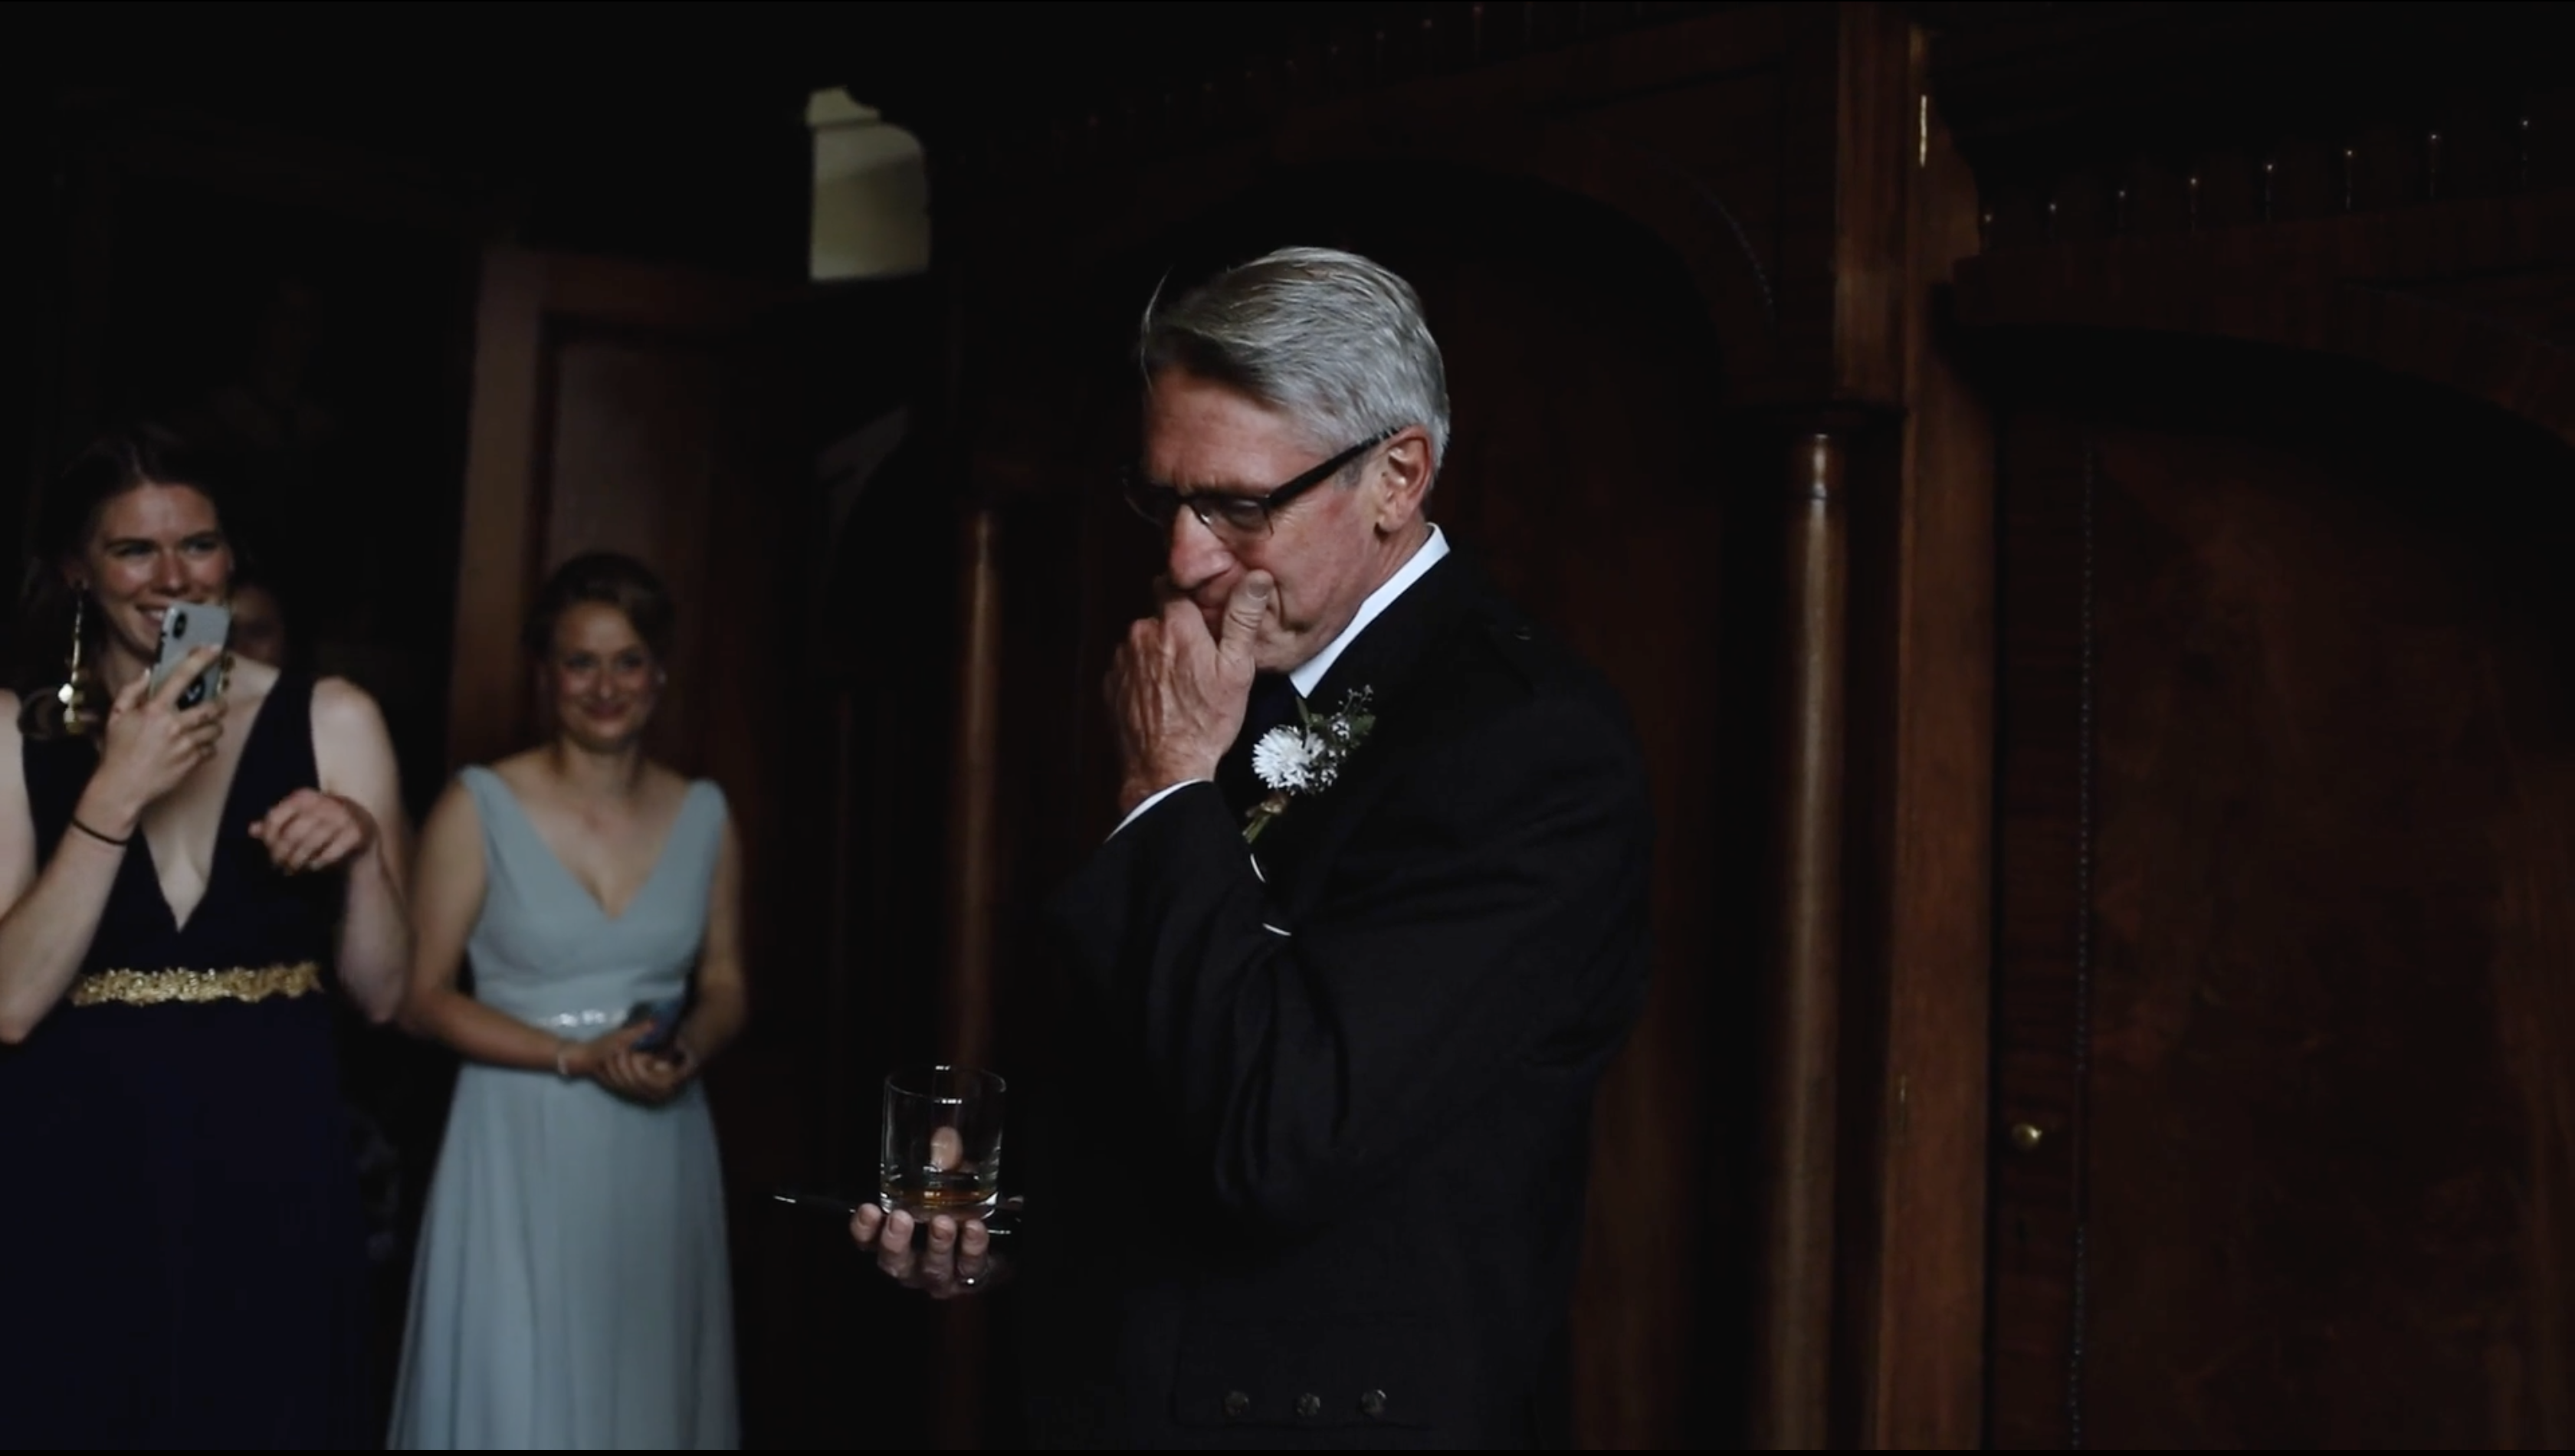 Dad reacts to seeing bride in her wedding dress for the first time. Relaxed wedding video Cambo House.